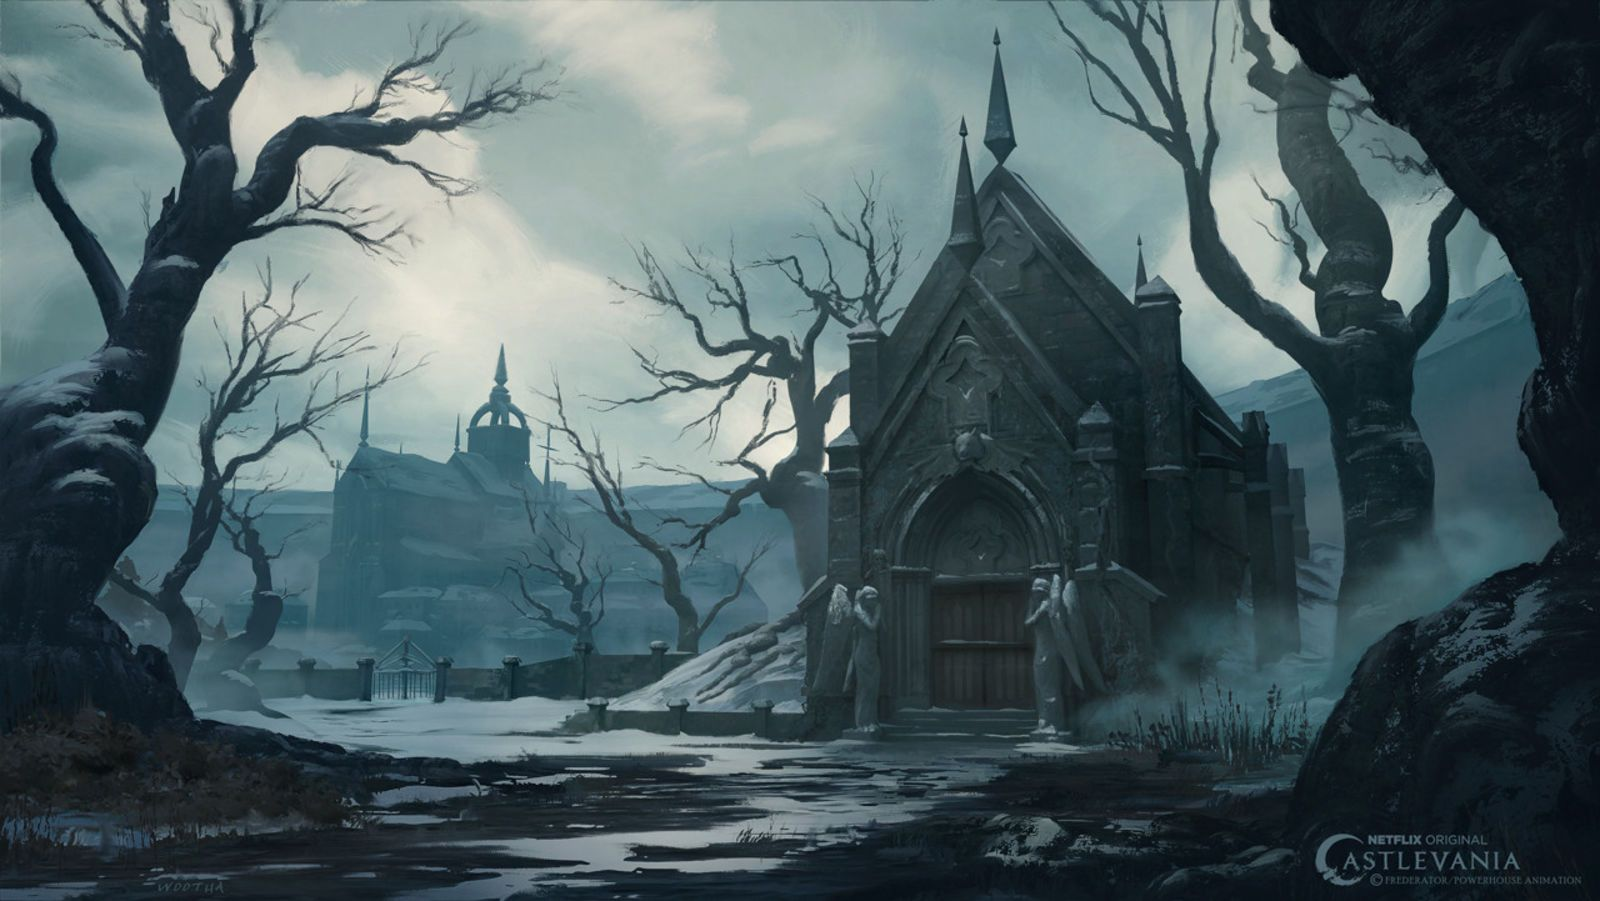 The Art Of Castlevania's Netflix Series Landscape